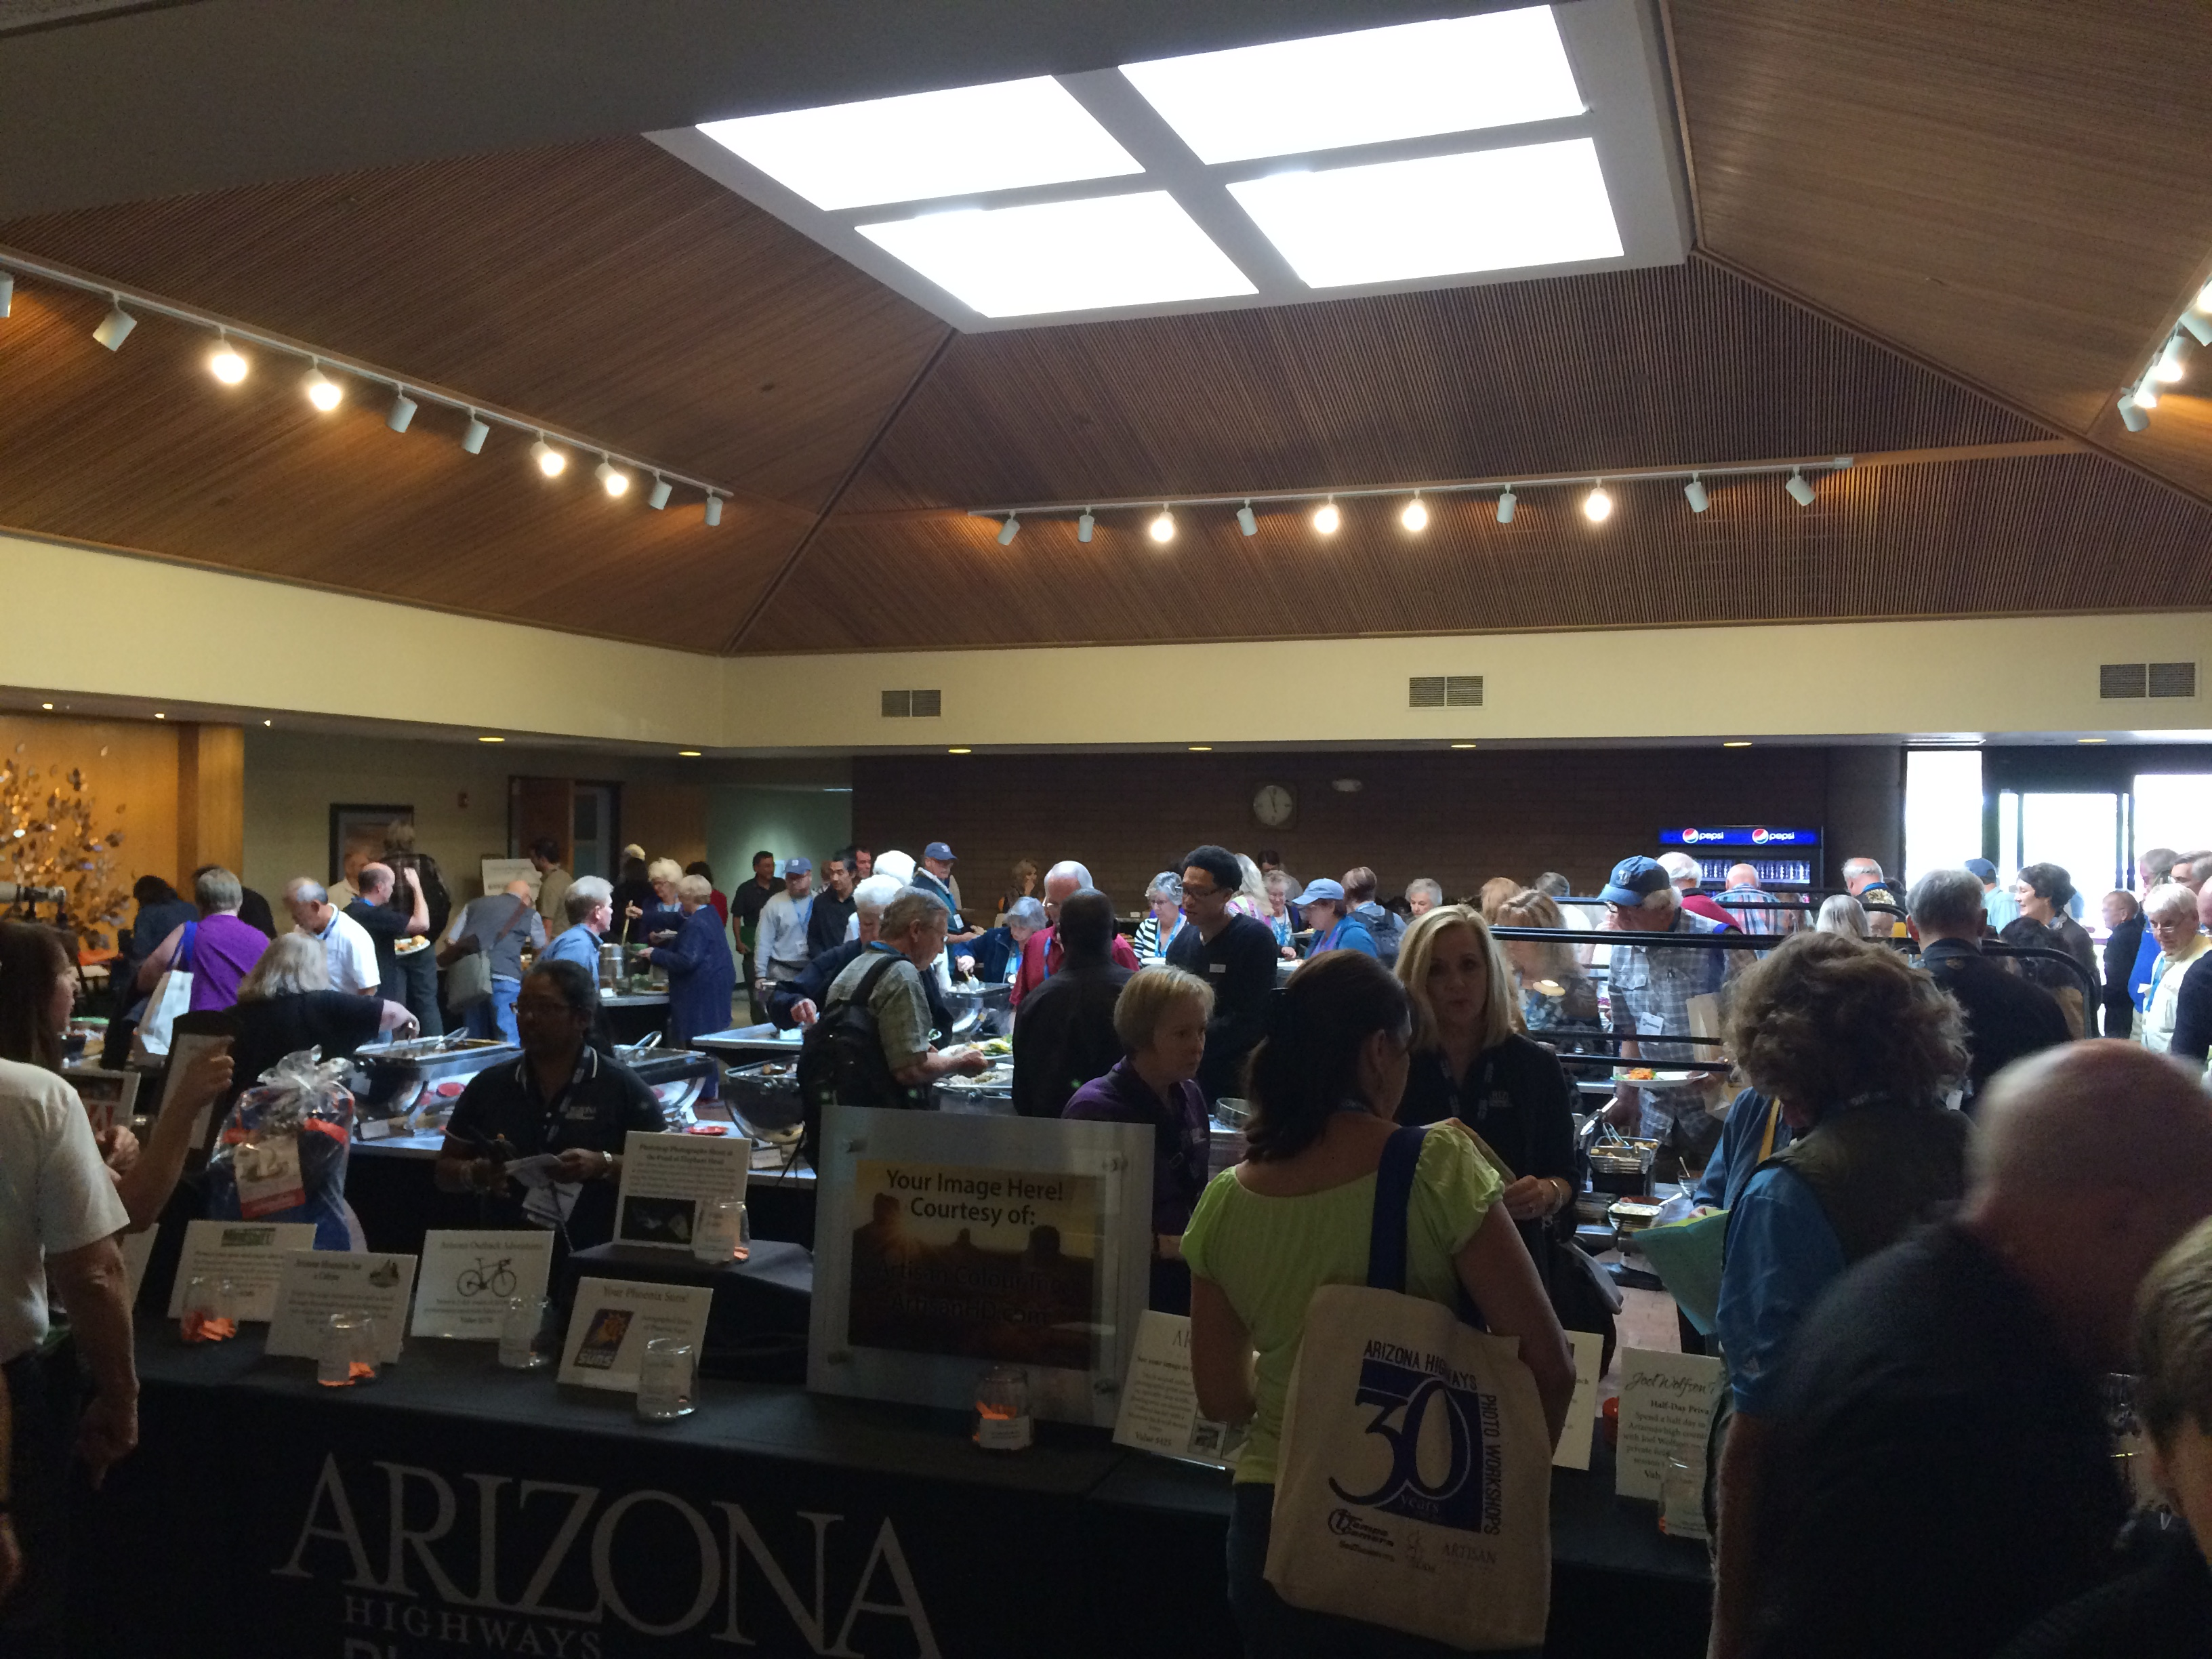 30th Photo Symposium for Arizona Highways conference